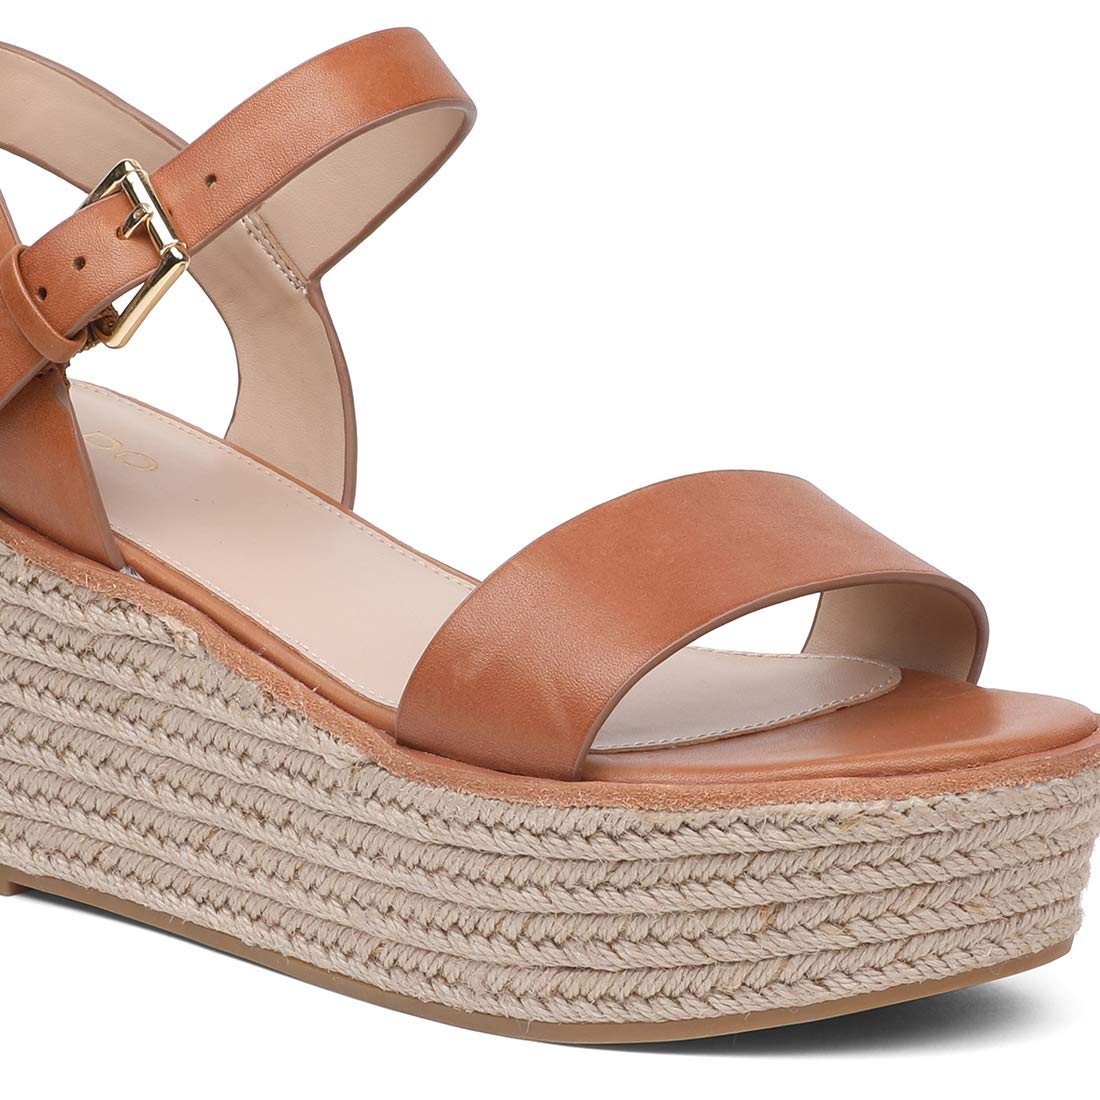 a1179ff78c89d Aldo Brown Wedges for Women: Buy Online at Low Prices in India ...